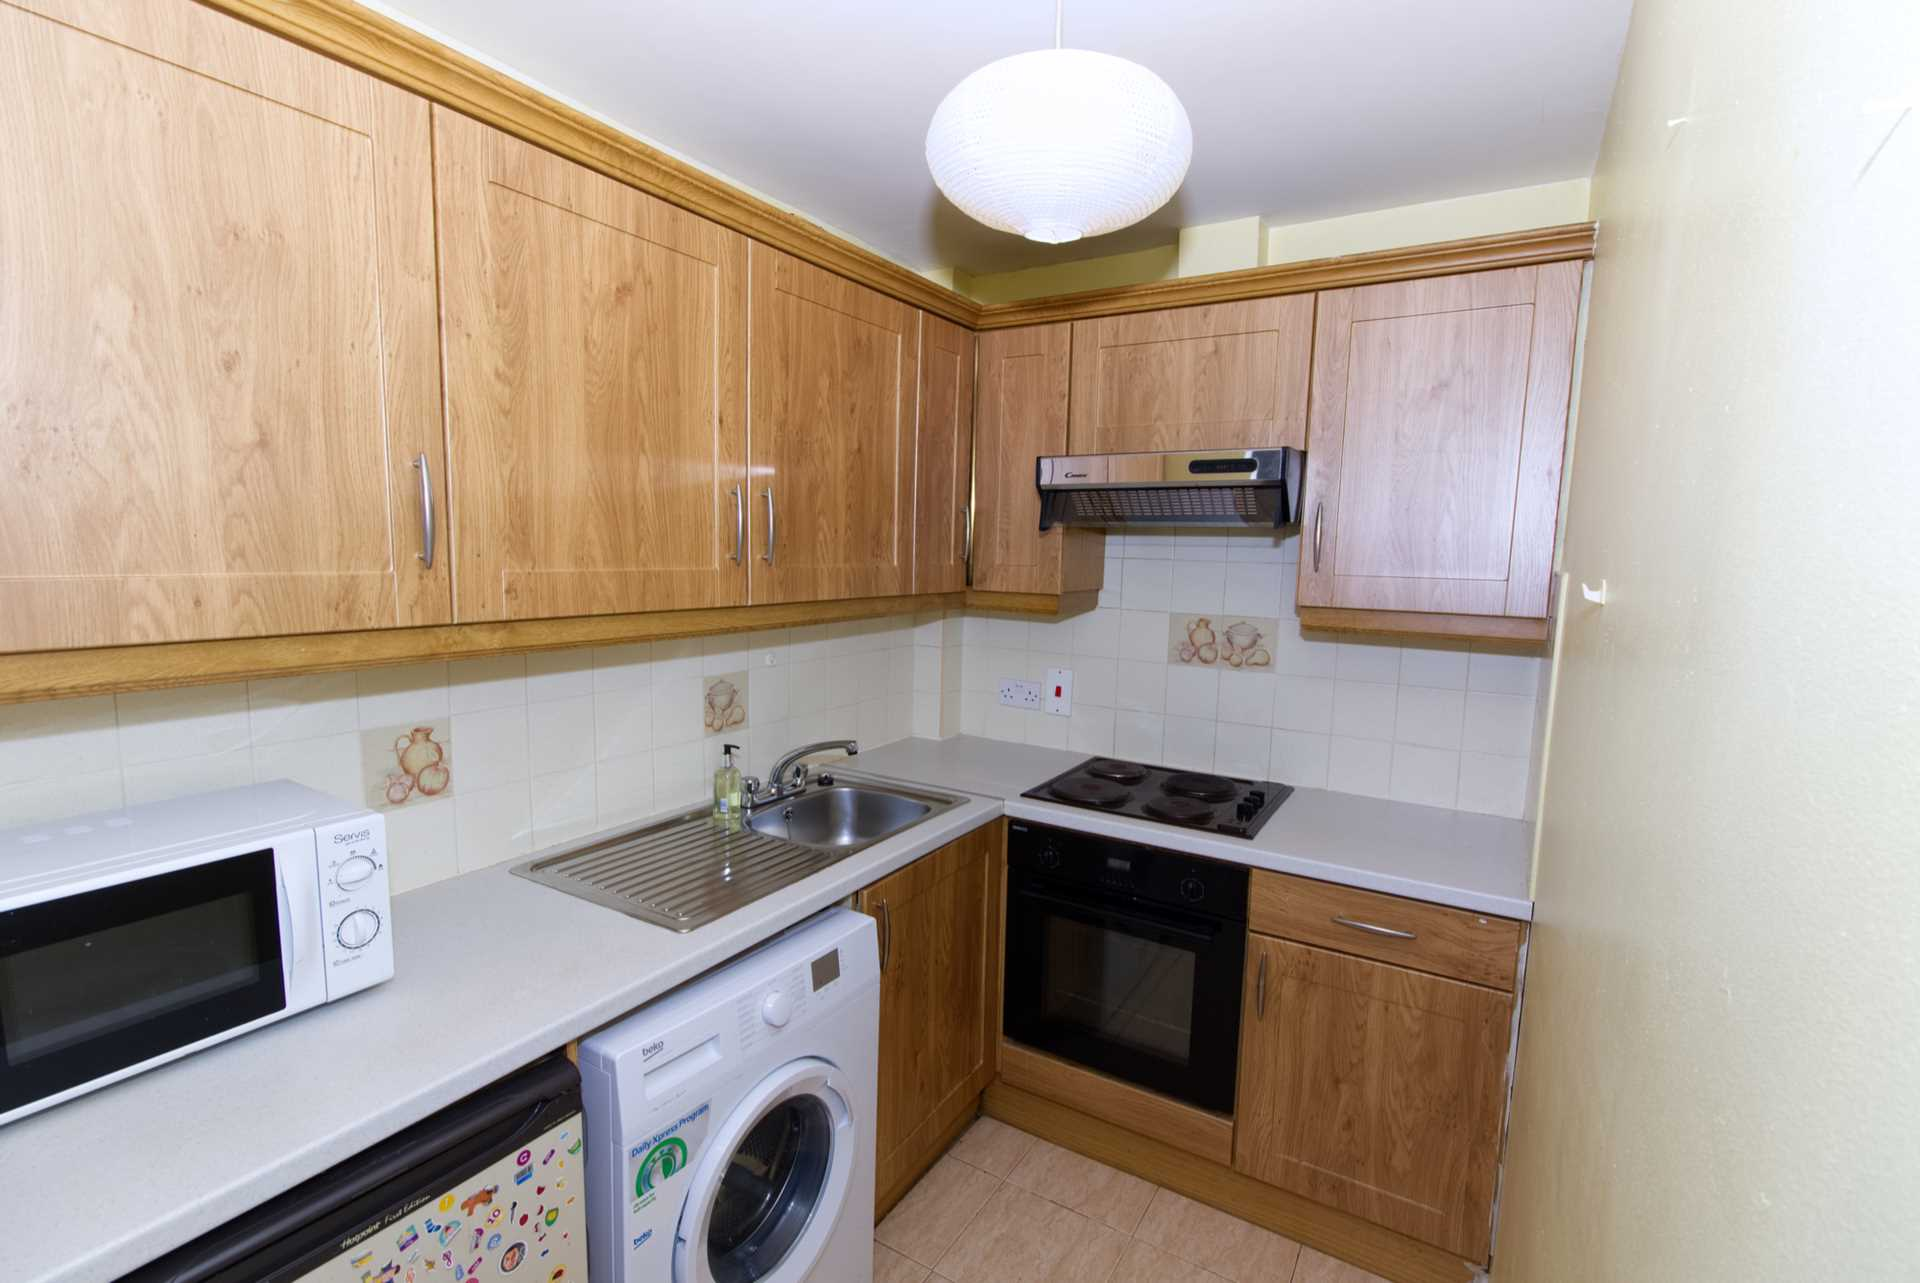 56 Whitehall Square, Perrystown, Dublin 12, Image 3